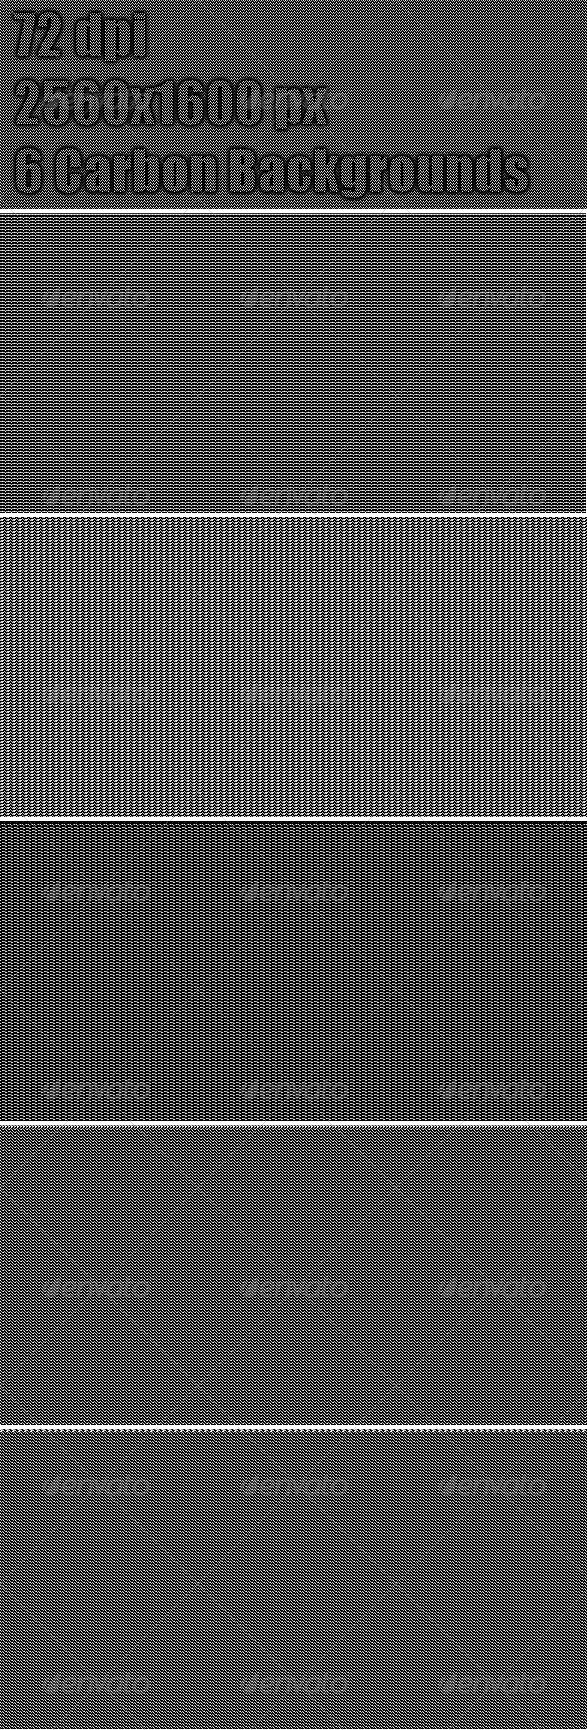 6 Carbon Web Backgrounds  #GraphicRiver         Backgrounds: 6  	 Resolution: 2560×1600  	 DPI : 72  	 Format: Ready-made JPG files     Created: 11April12 GraphicsFilesIncluded: JPGImage Layered: No PixelDimensions: 2560x1600 Tags: background #black #carbon #carbonwebbackgrounds #crisp #dark #fiber #graphic #graphicdesign #grey #grunge #minimal #modern #pattern #pixel #print #professional #subtle #techno #texture #vintage #web